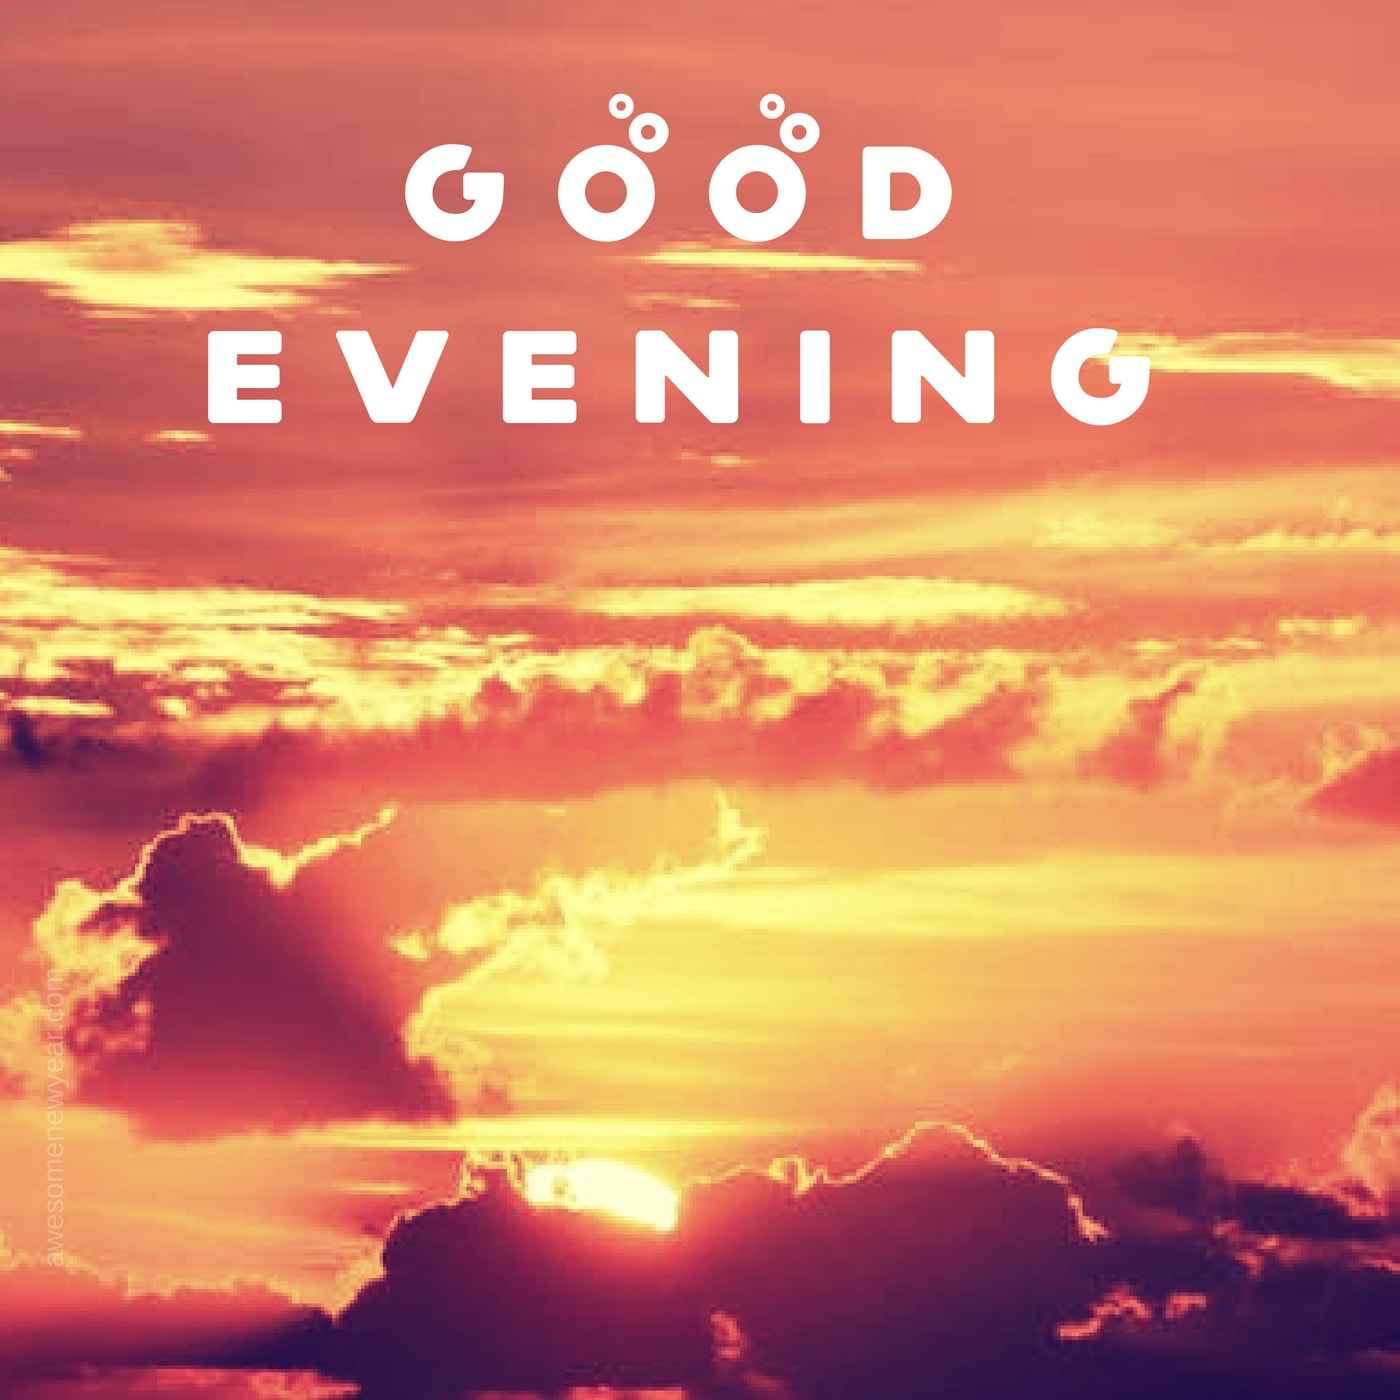 Latest Good Evening Images Hd Wallpaper Free Download